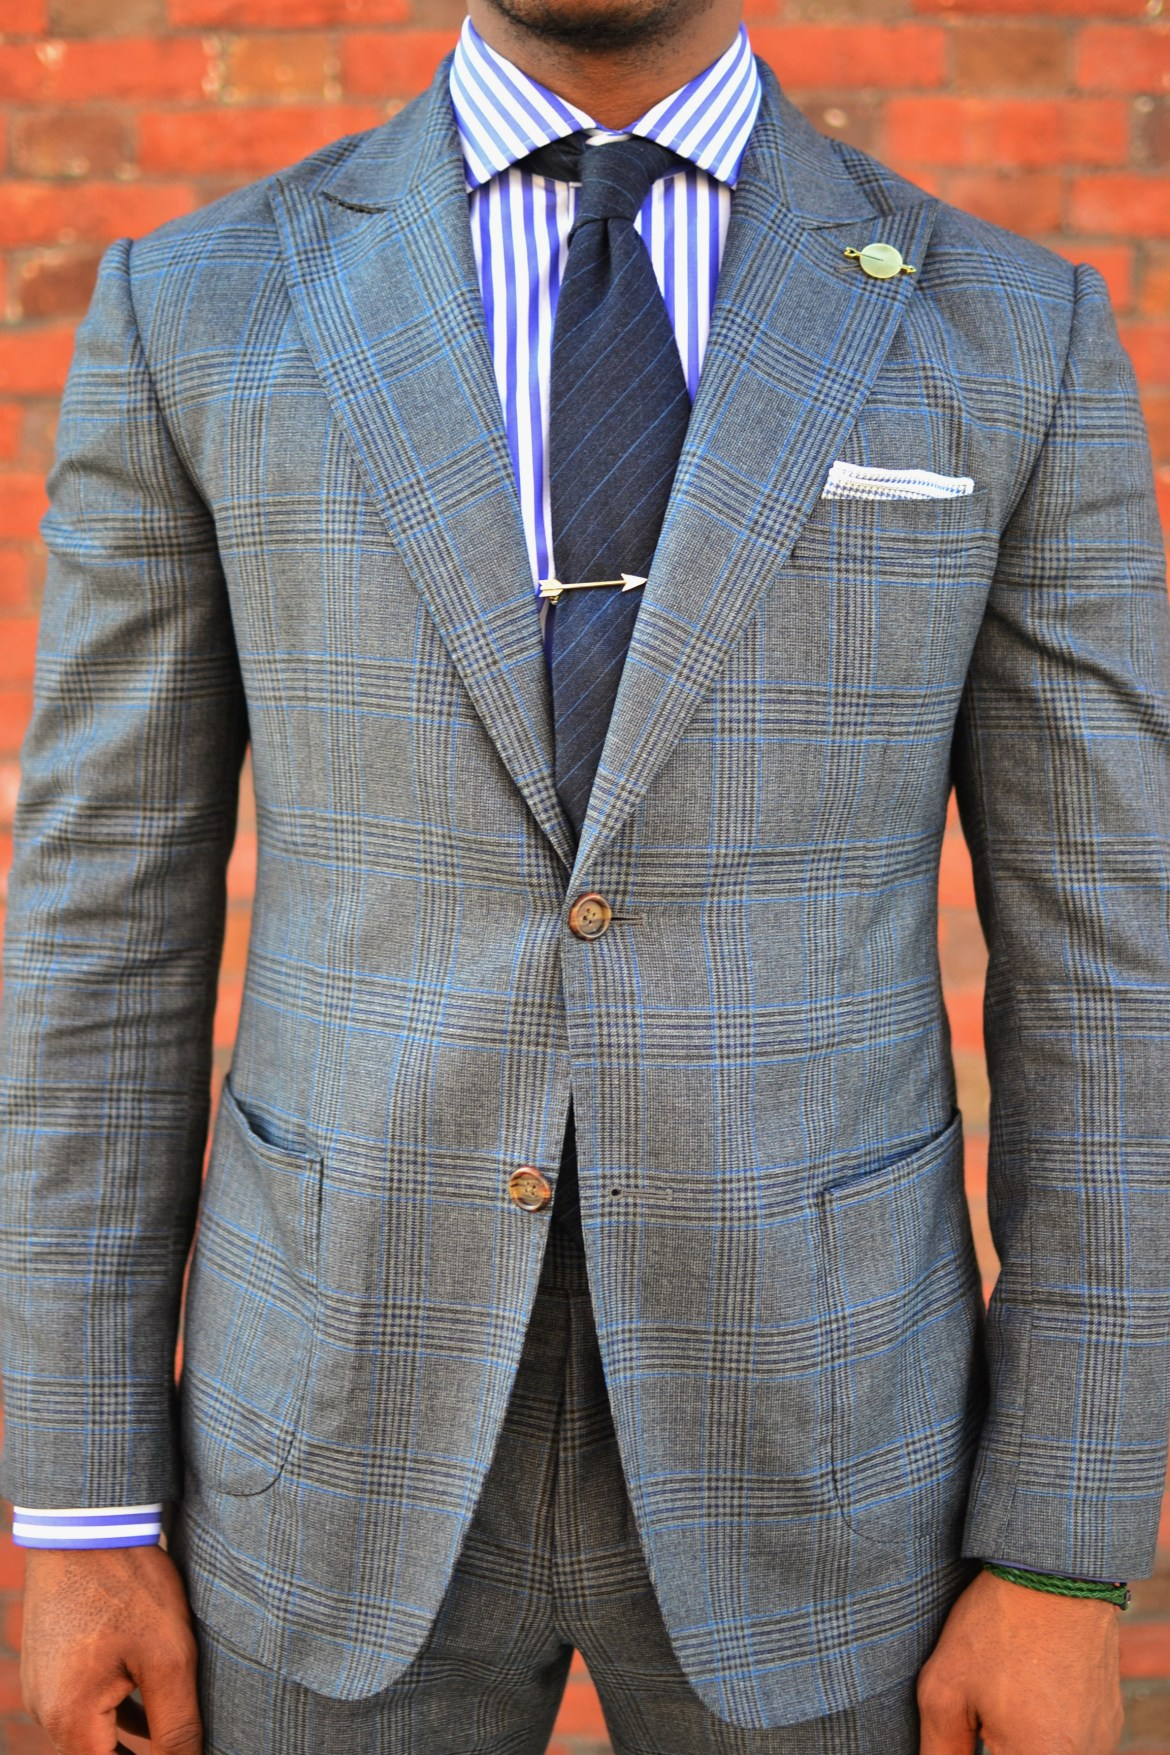 Buttons & Threads Glen Plaid Suit Review On Men's Style Pro